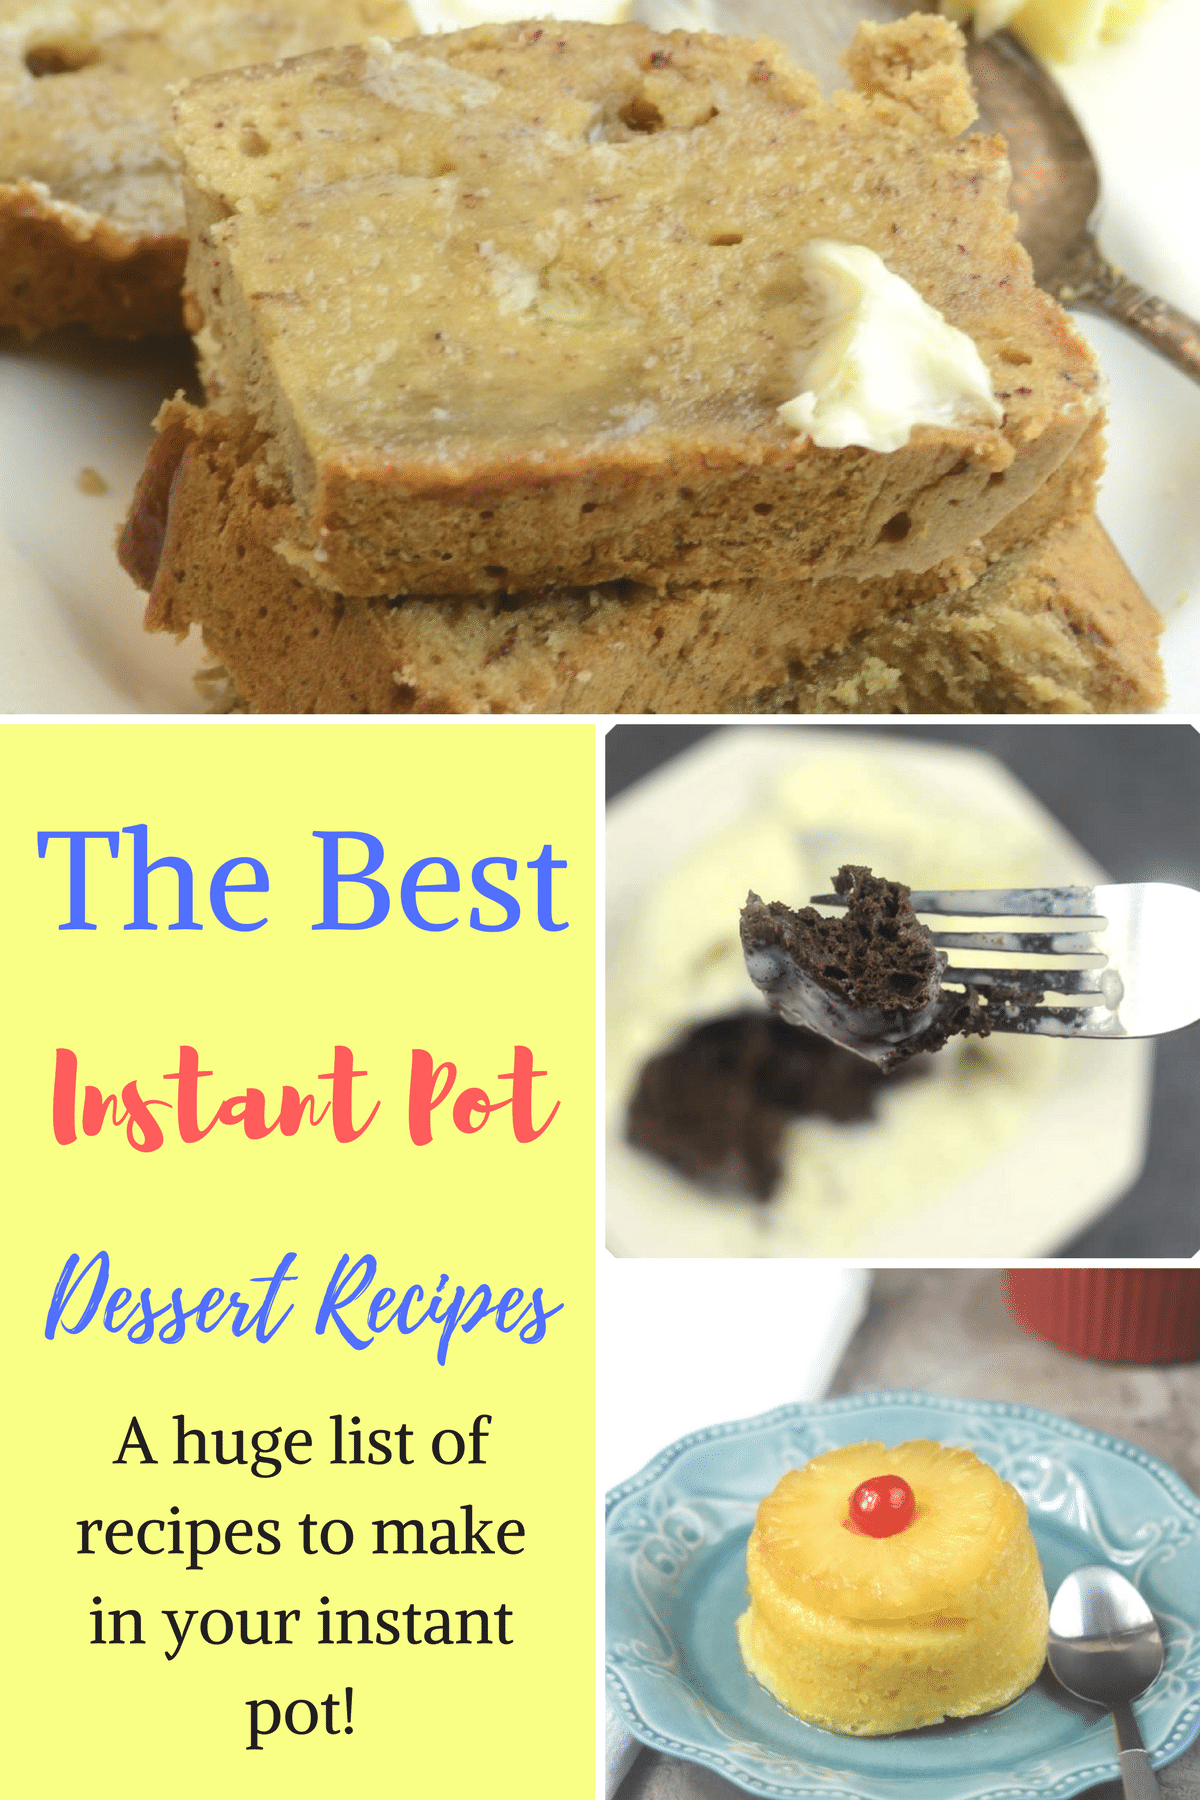 If you recently got an Instant Pot or are an avid user and just looking for more Instant Pot Desserts to make, than you have come to the right place! I have a little bit of everything from cakes, yogurt, rice pudding, muffin bites and more. Be prepared for your tummy to growl as you scroll through, these are just all so tasty. #instantpot #bestdesserts #dessert #recipe #iprecipes #easyrecipes